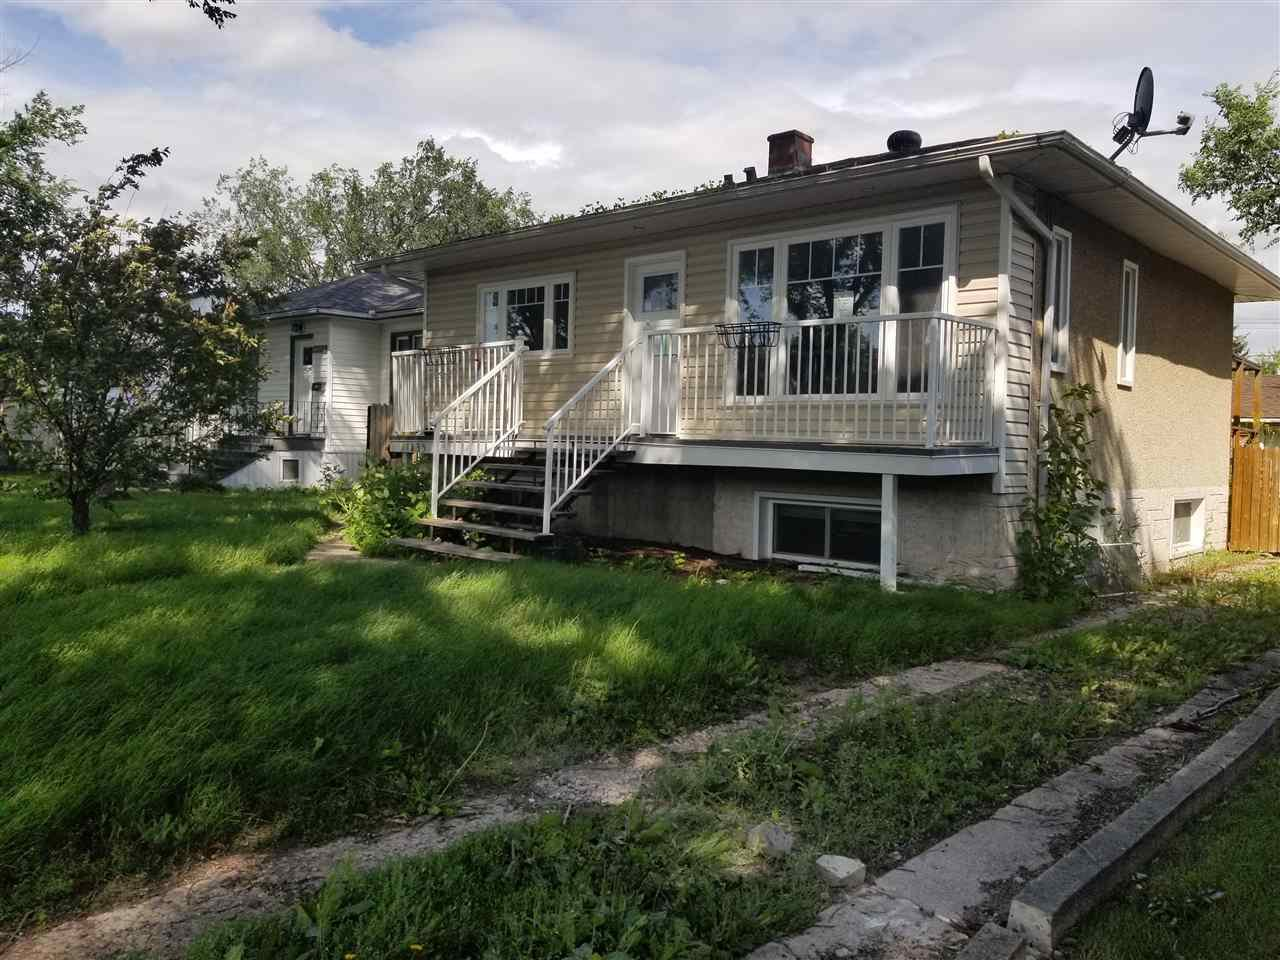 Main Photo: 11835 51 Street in Edmonton: Zone 06 House for sale : MLS®# E4167190